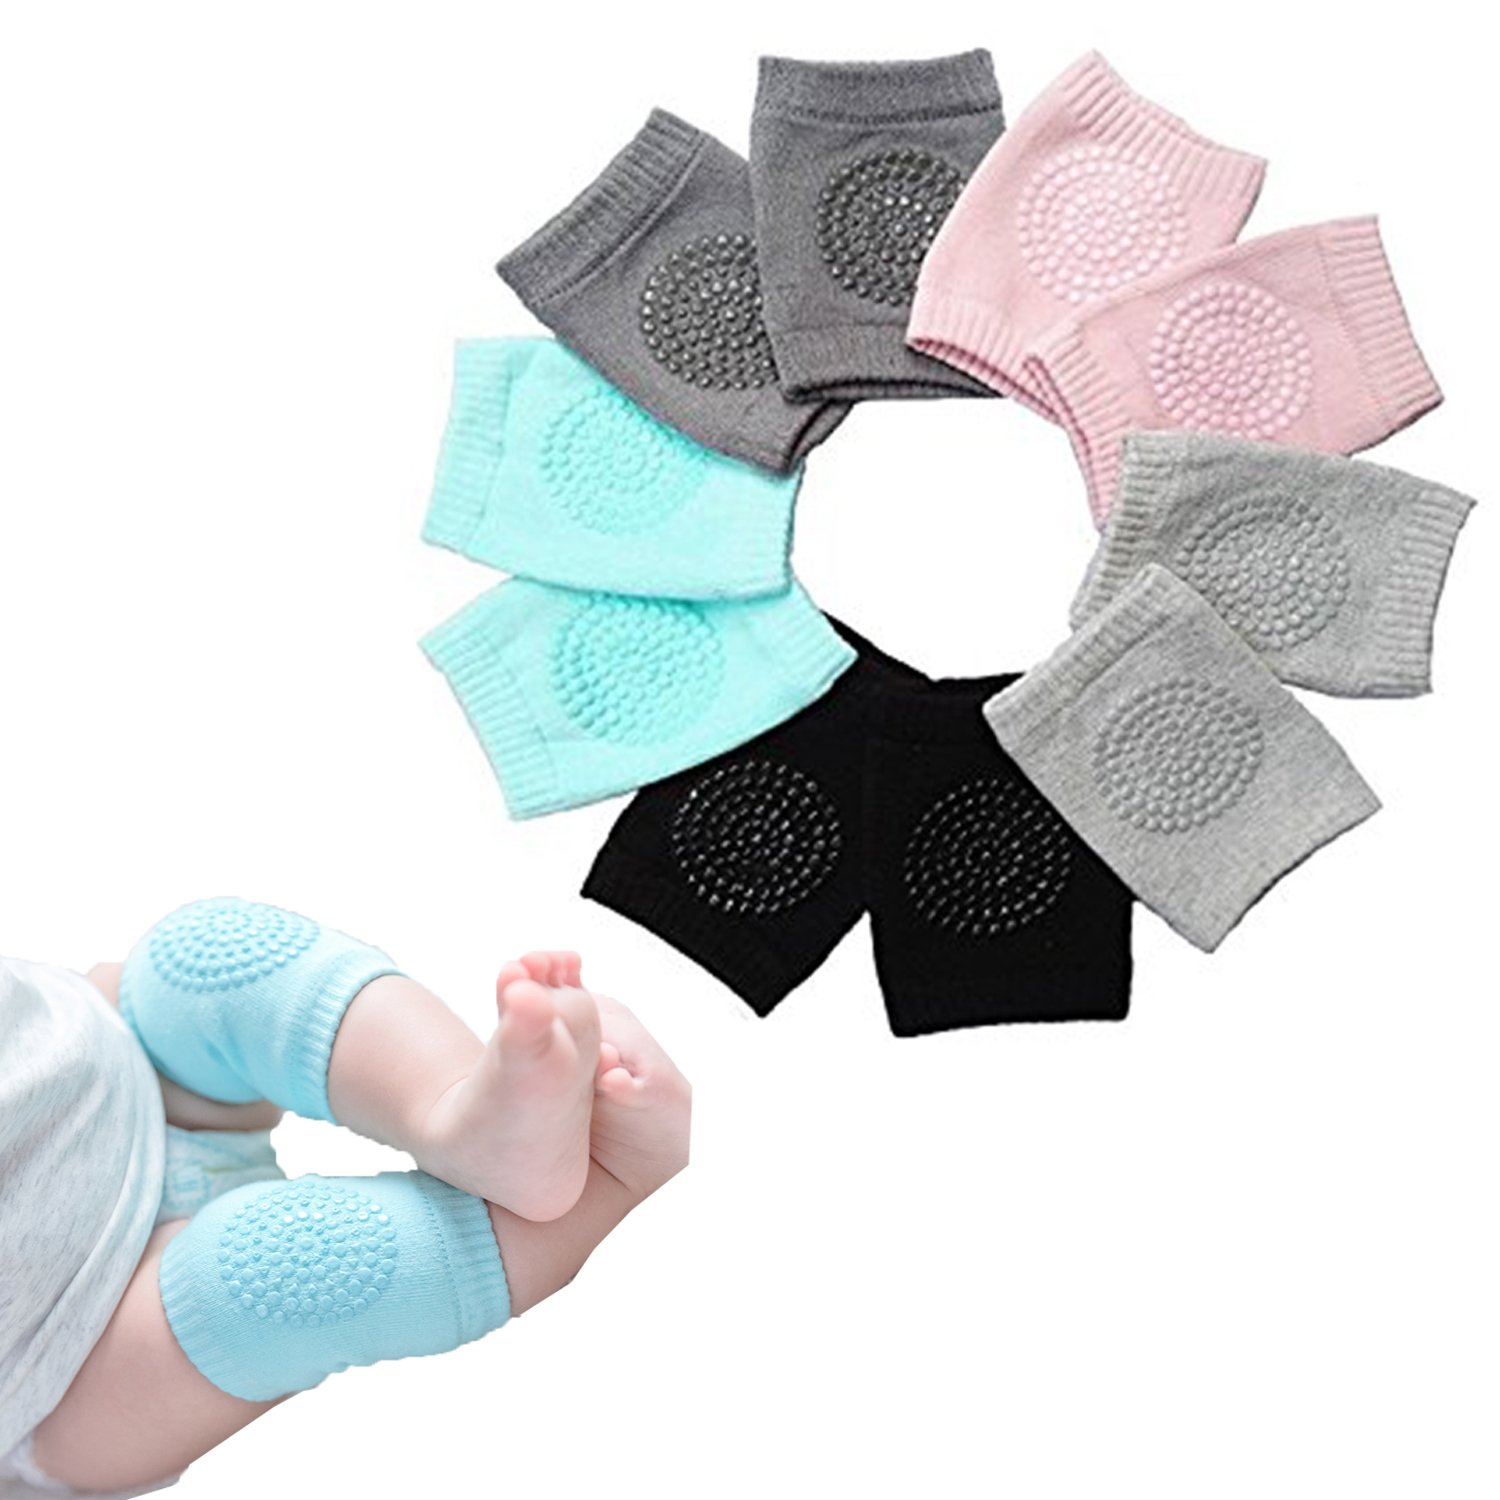 Baby Crawling Knee Pads Mesh Kneepads Anti-slip Breathable Safety Protector Cover for 2-5 Years Unisex Kids